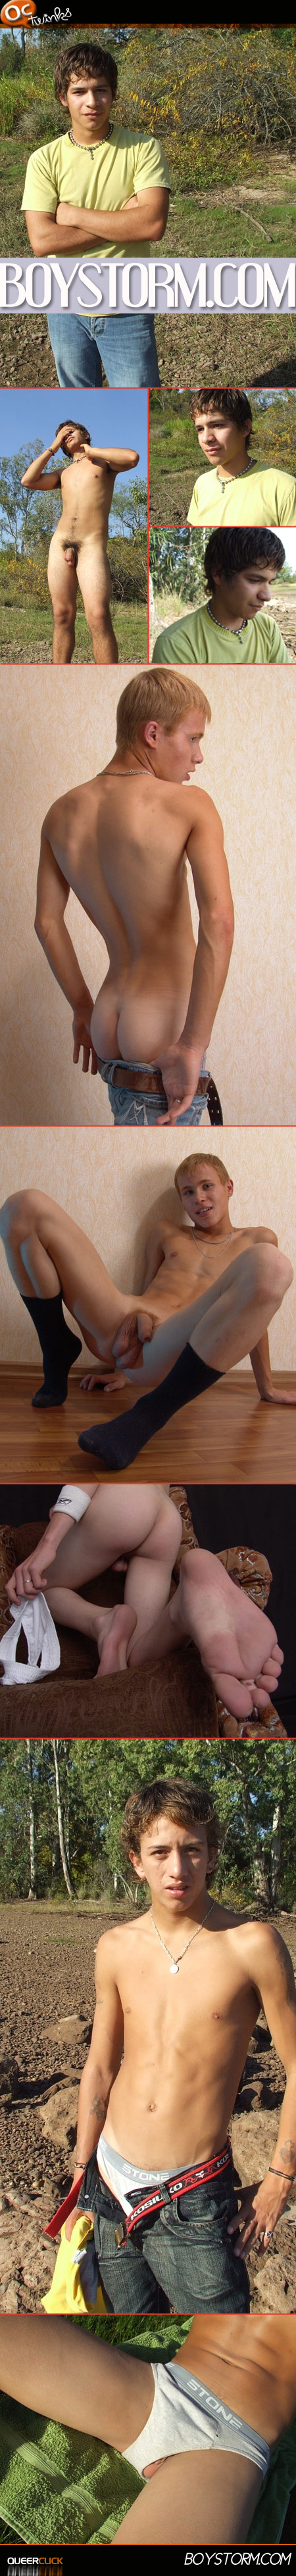 boystorm new twink faces ass and dicks